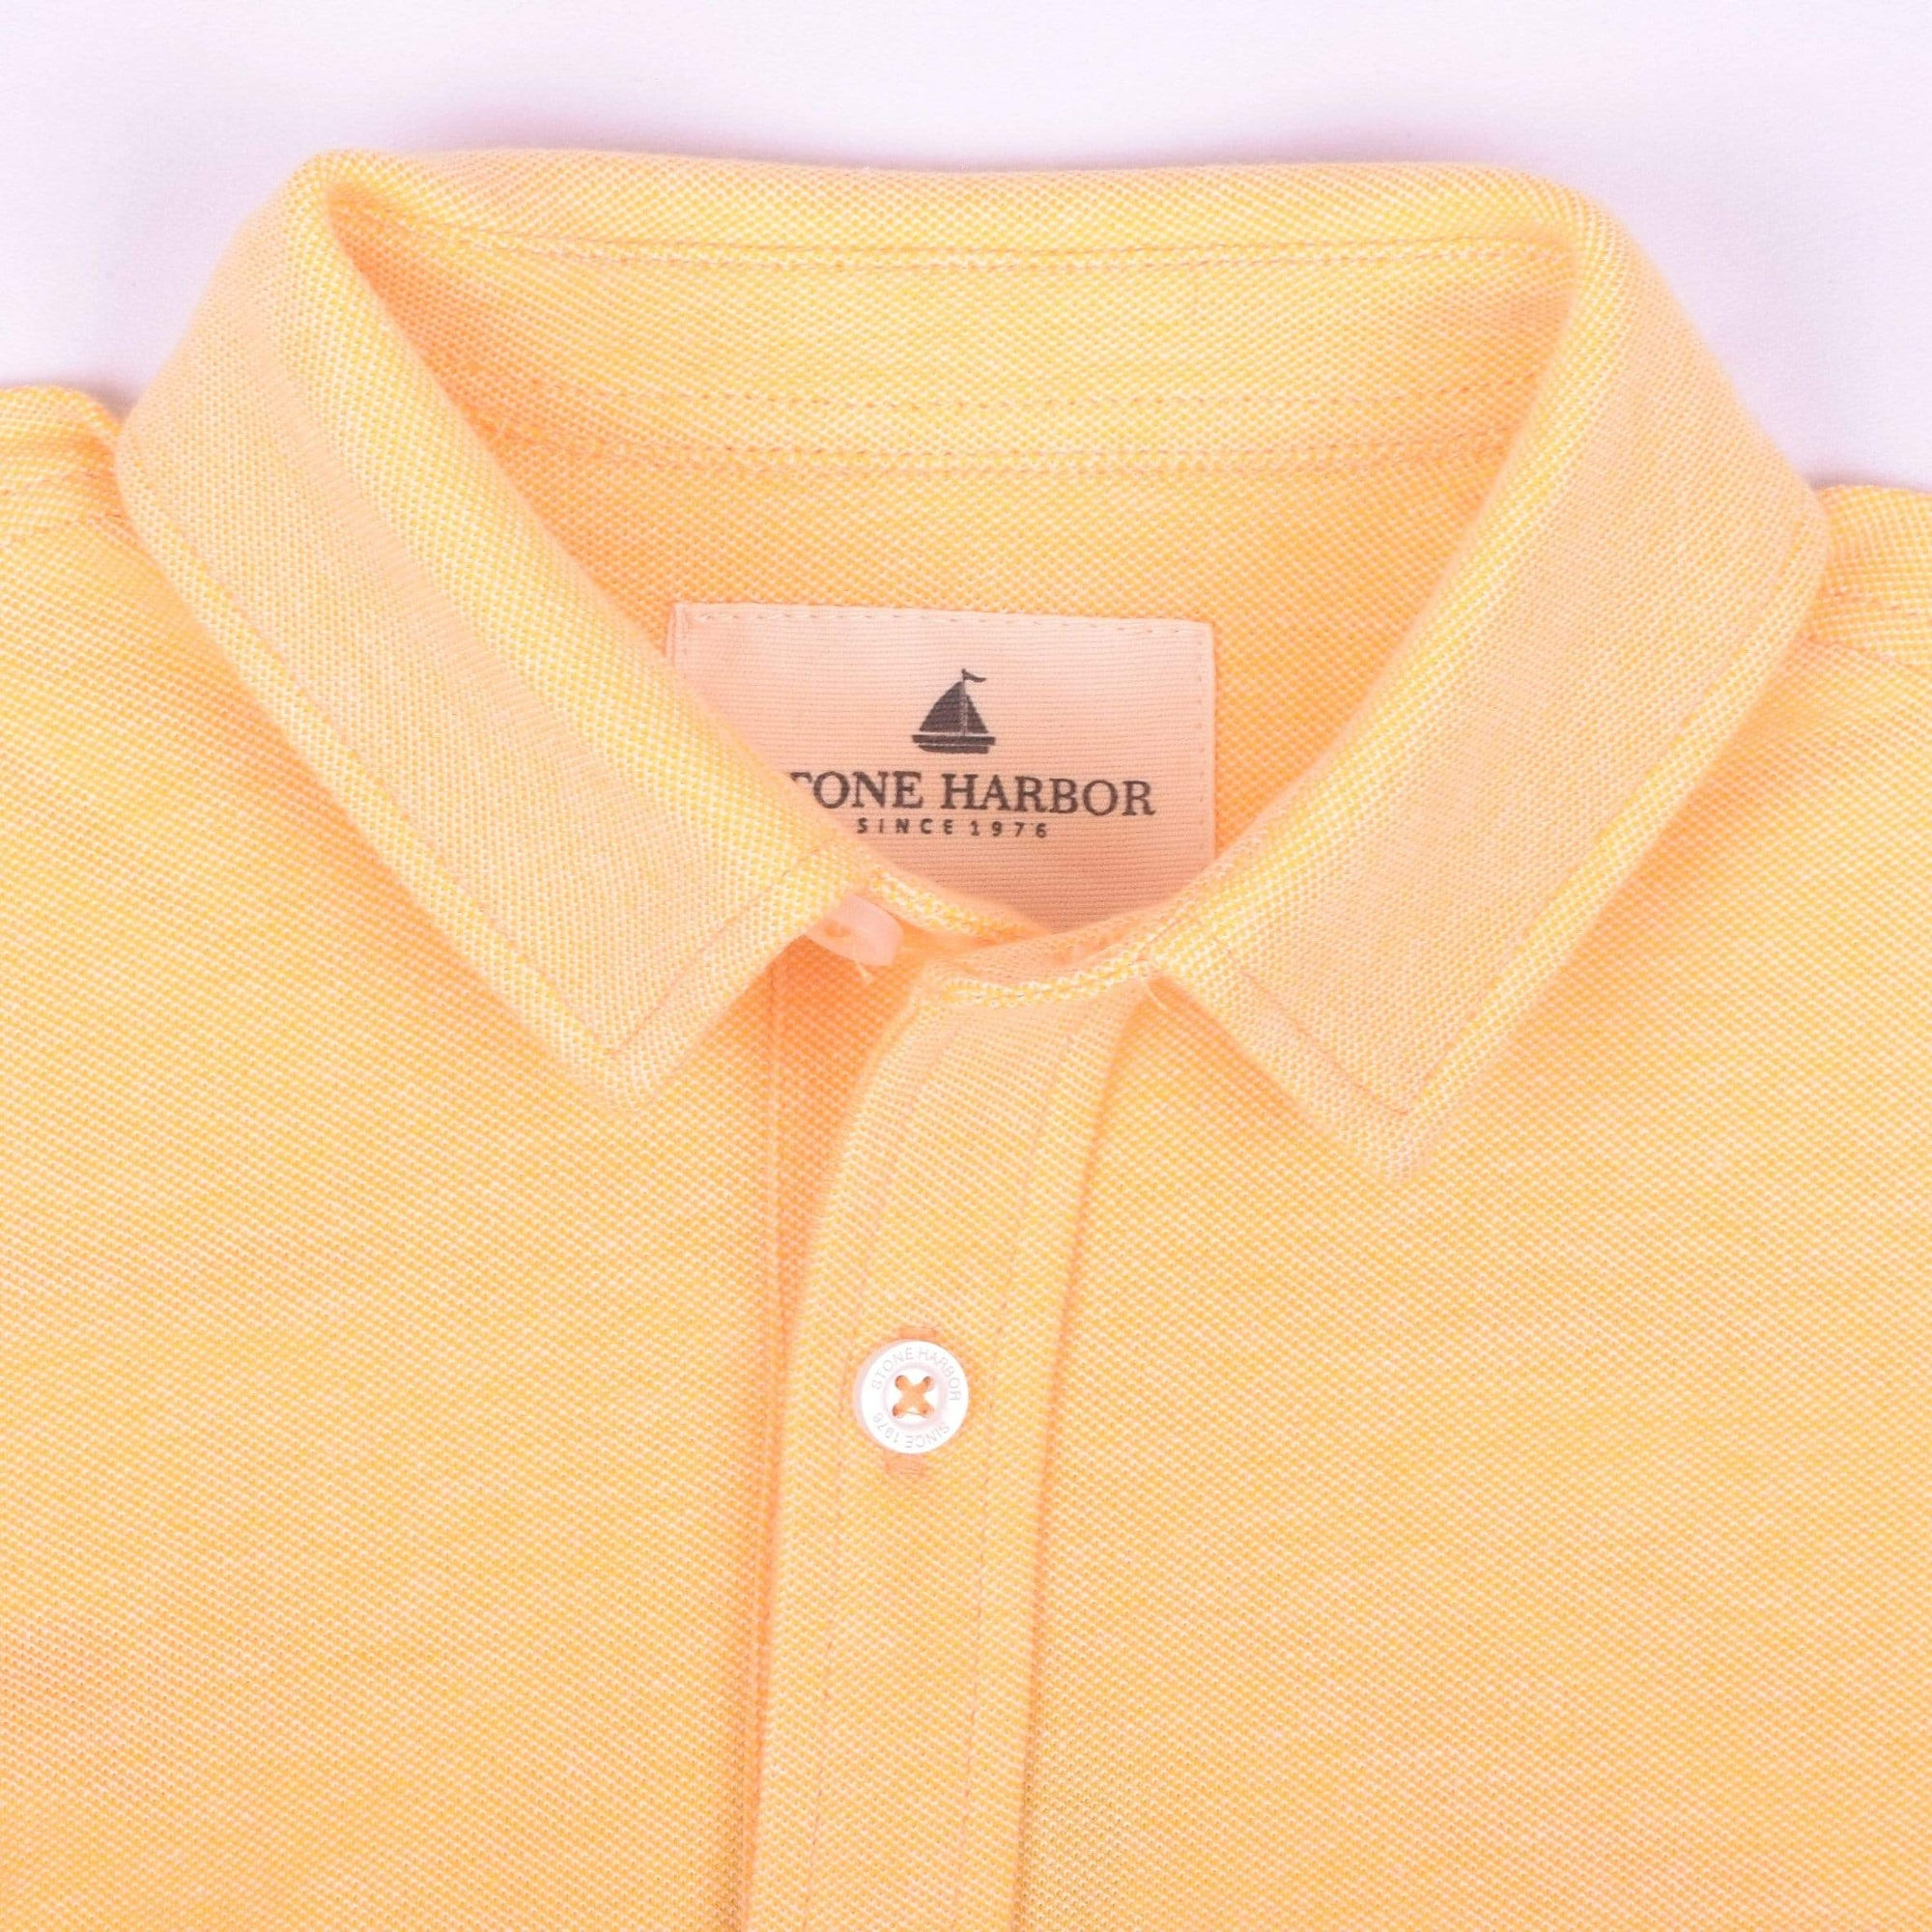 Stone Harbor Kid's Casual Shirt Yellow / 2-3 Years Stone Harbor Slim Fit Yellow Long Sleeve Button Shirt